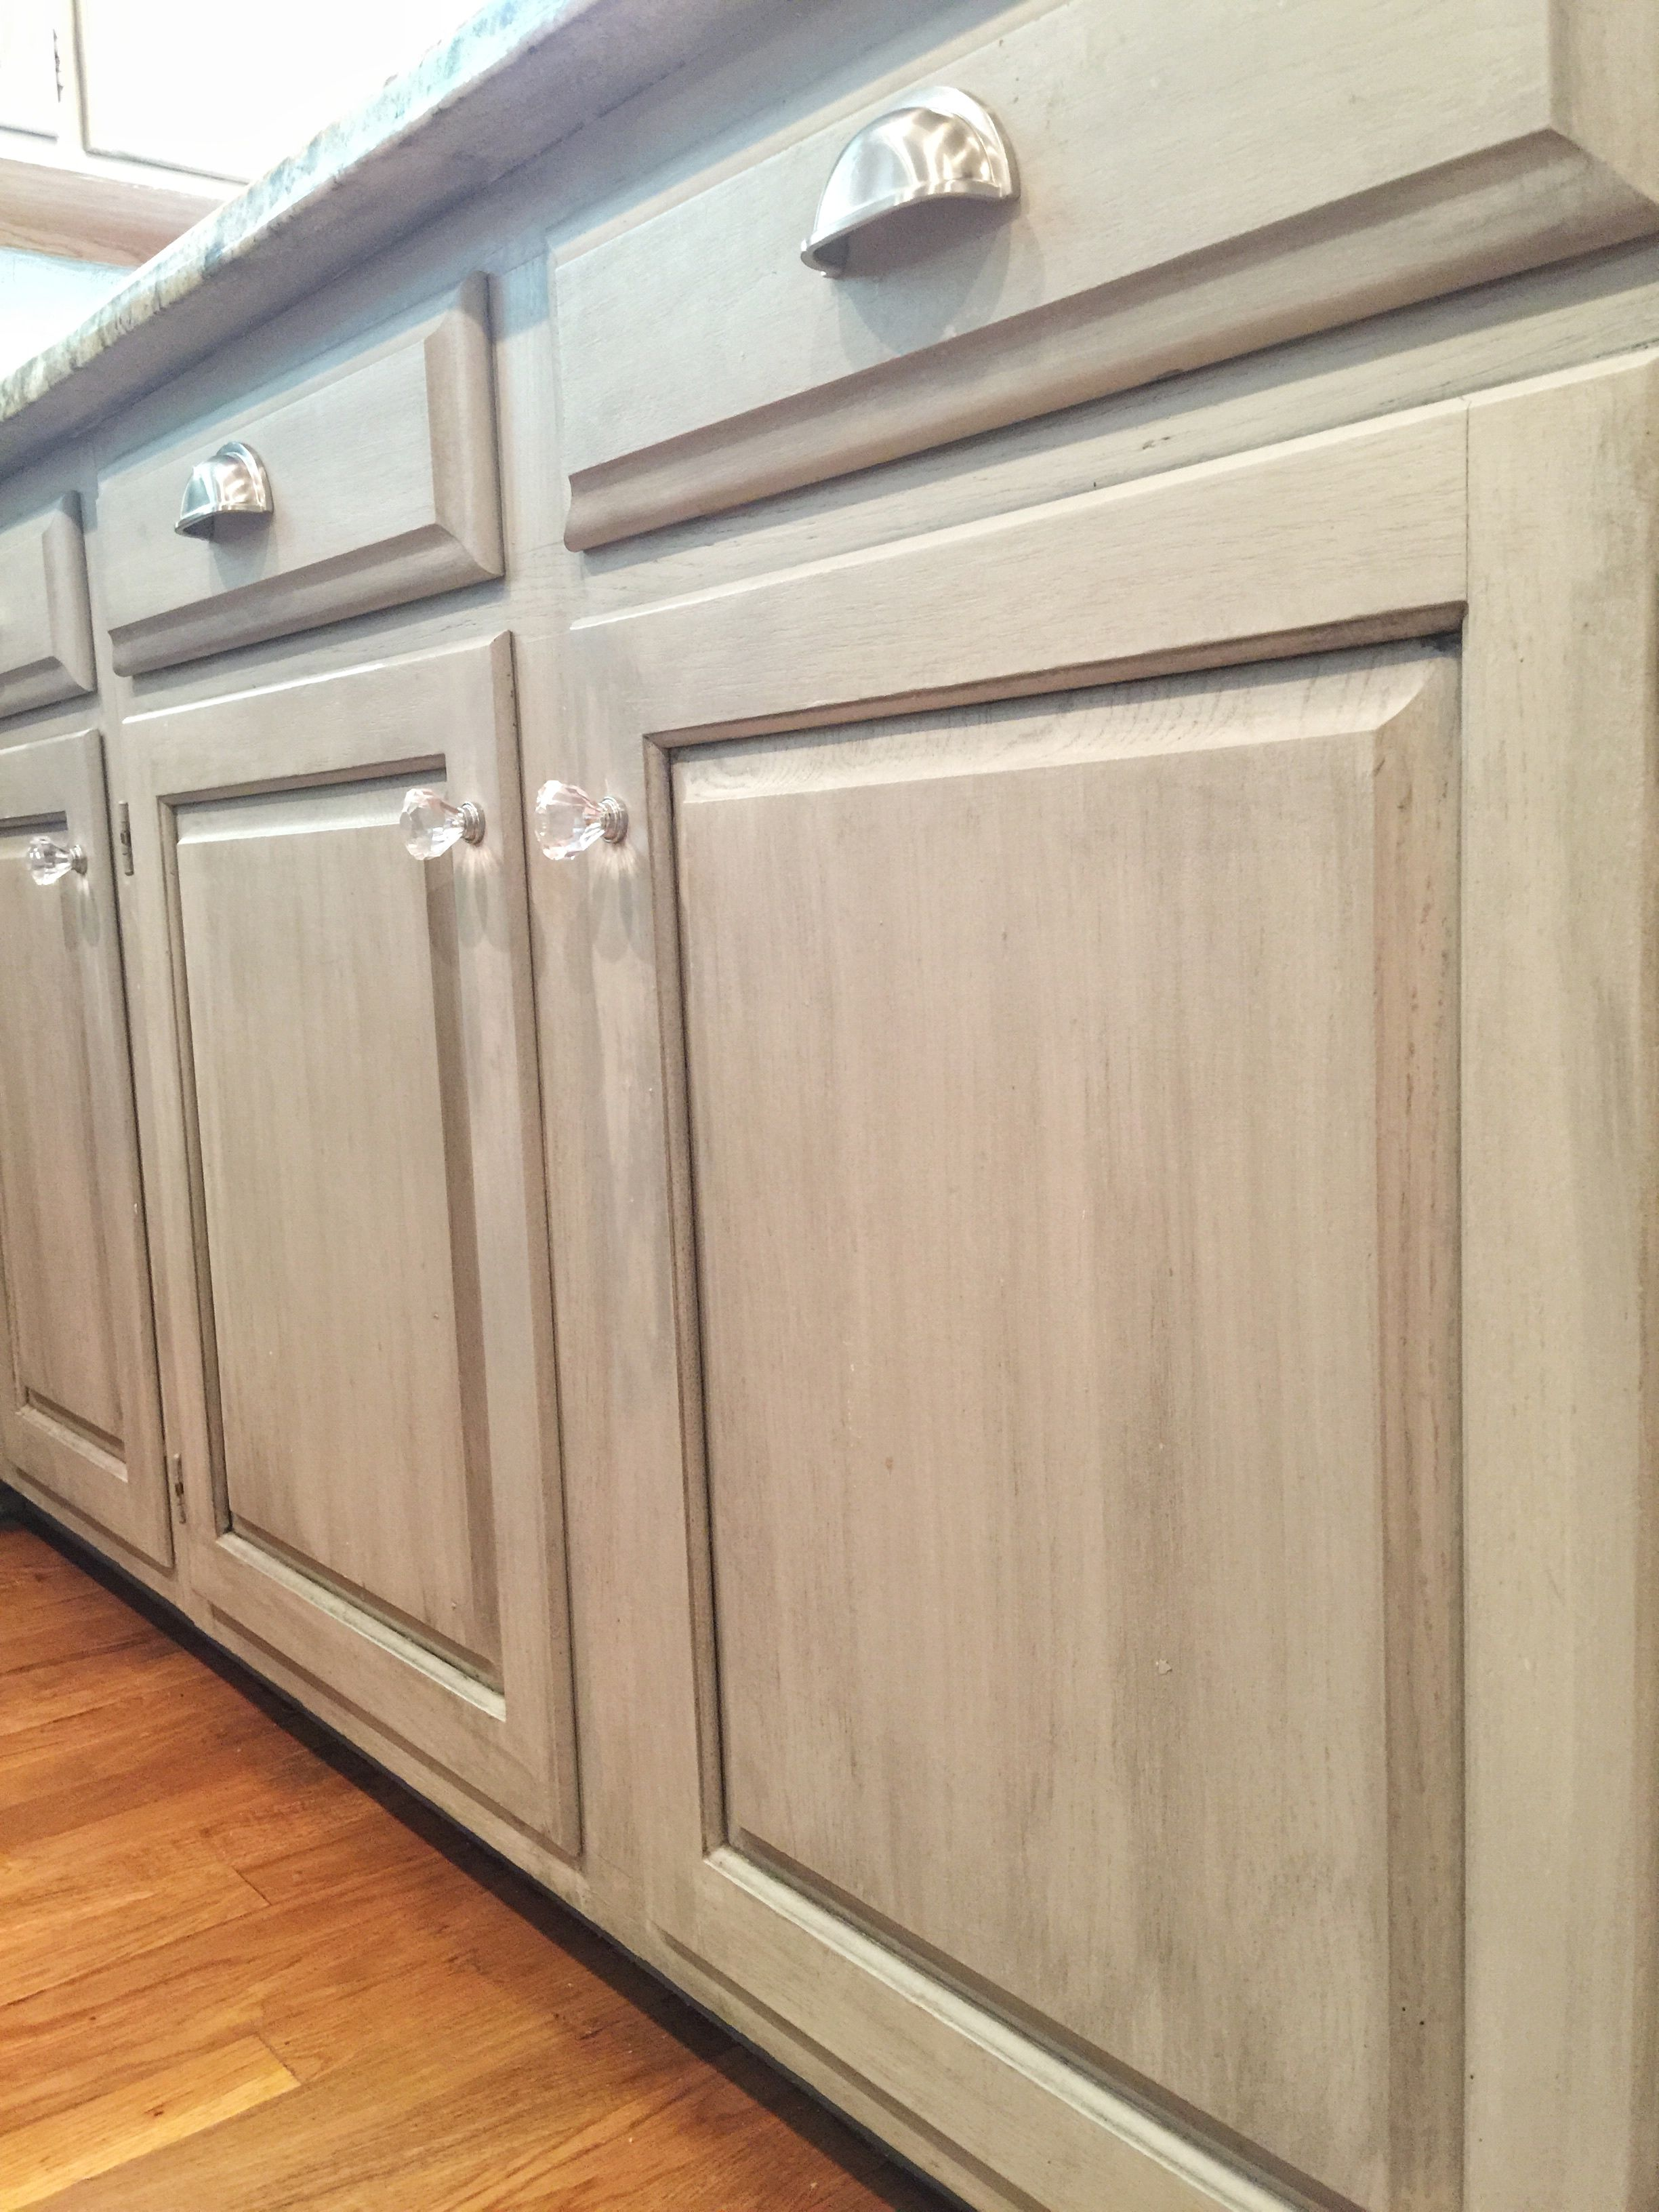 Pin By Laura Goodfellow On Diy Home Improvement Distressed Kitchen Cabinets Glazed Kitchen Cabinets Taupe Kitchen Cabinets